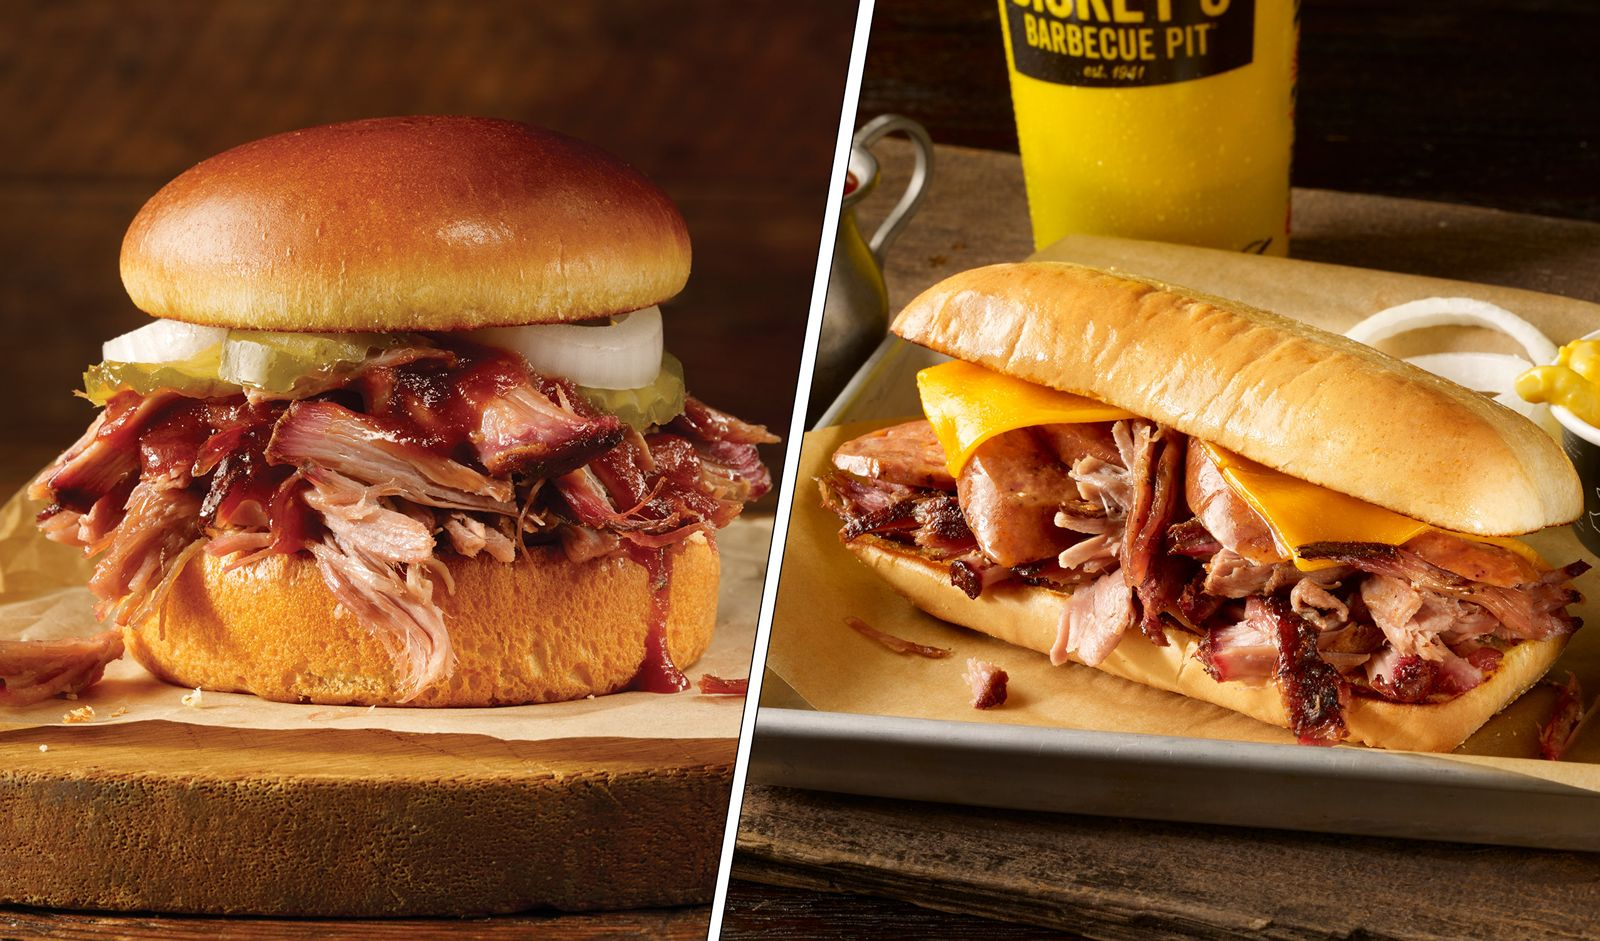 Dickey's Barbecue Pit Offers $3 Classic Pulled Pork Sandwiches and $6 Westerners